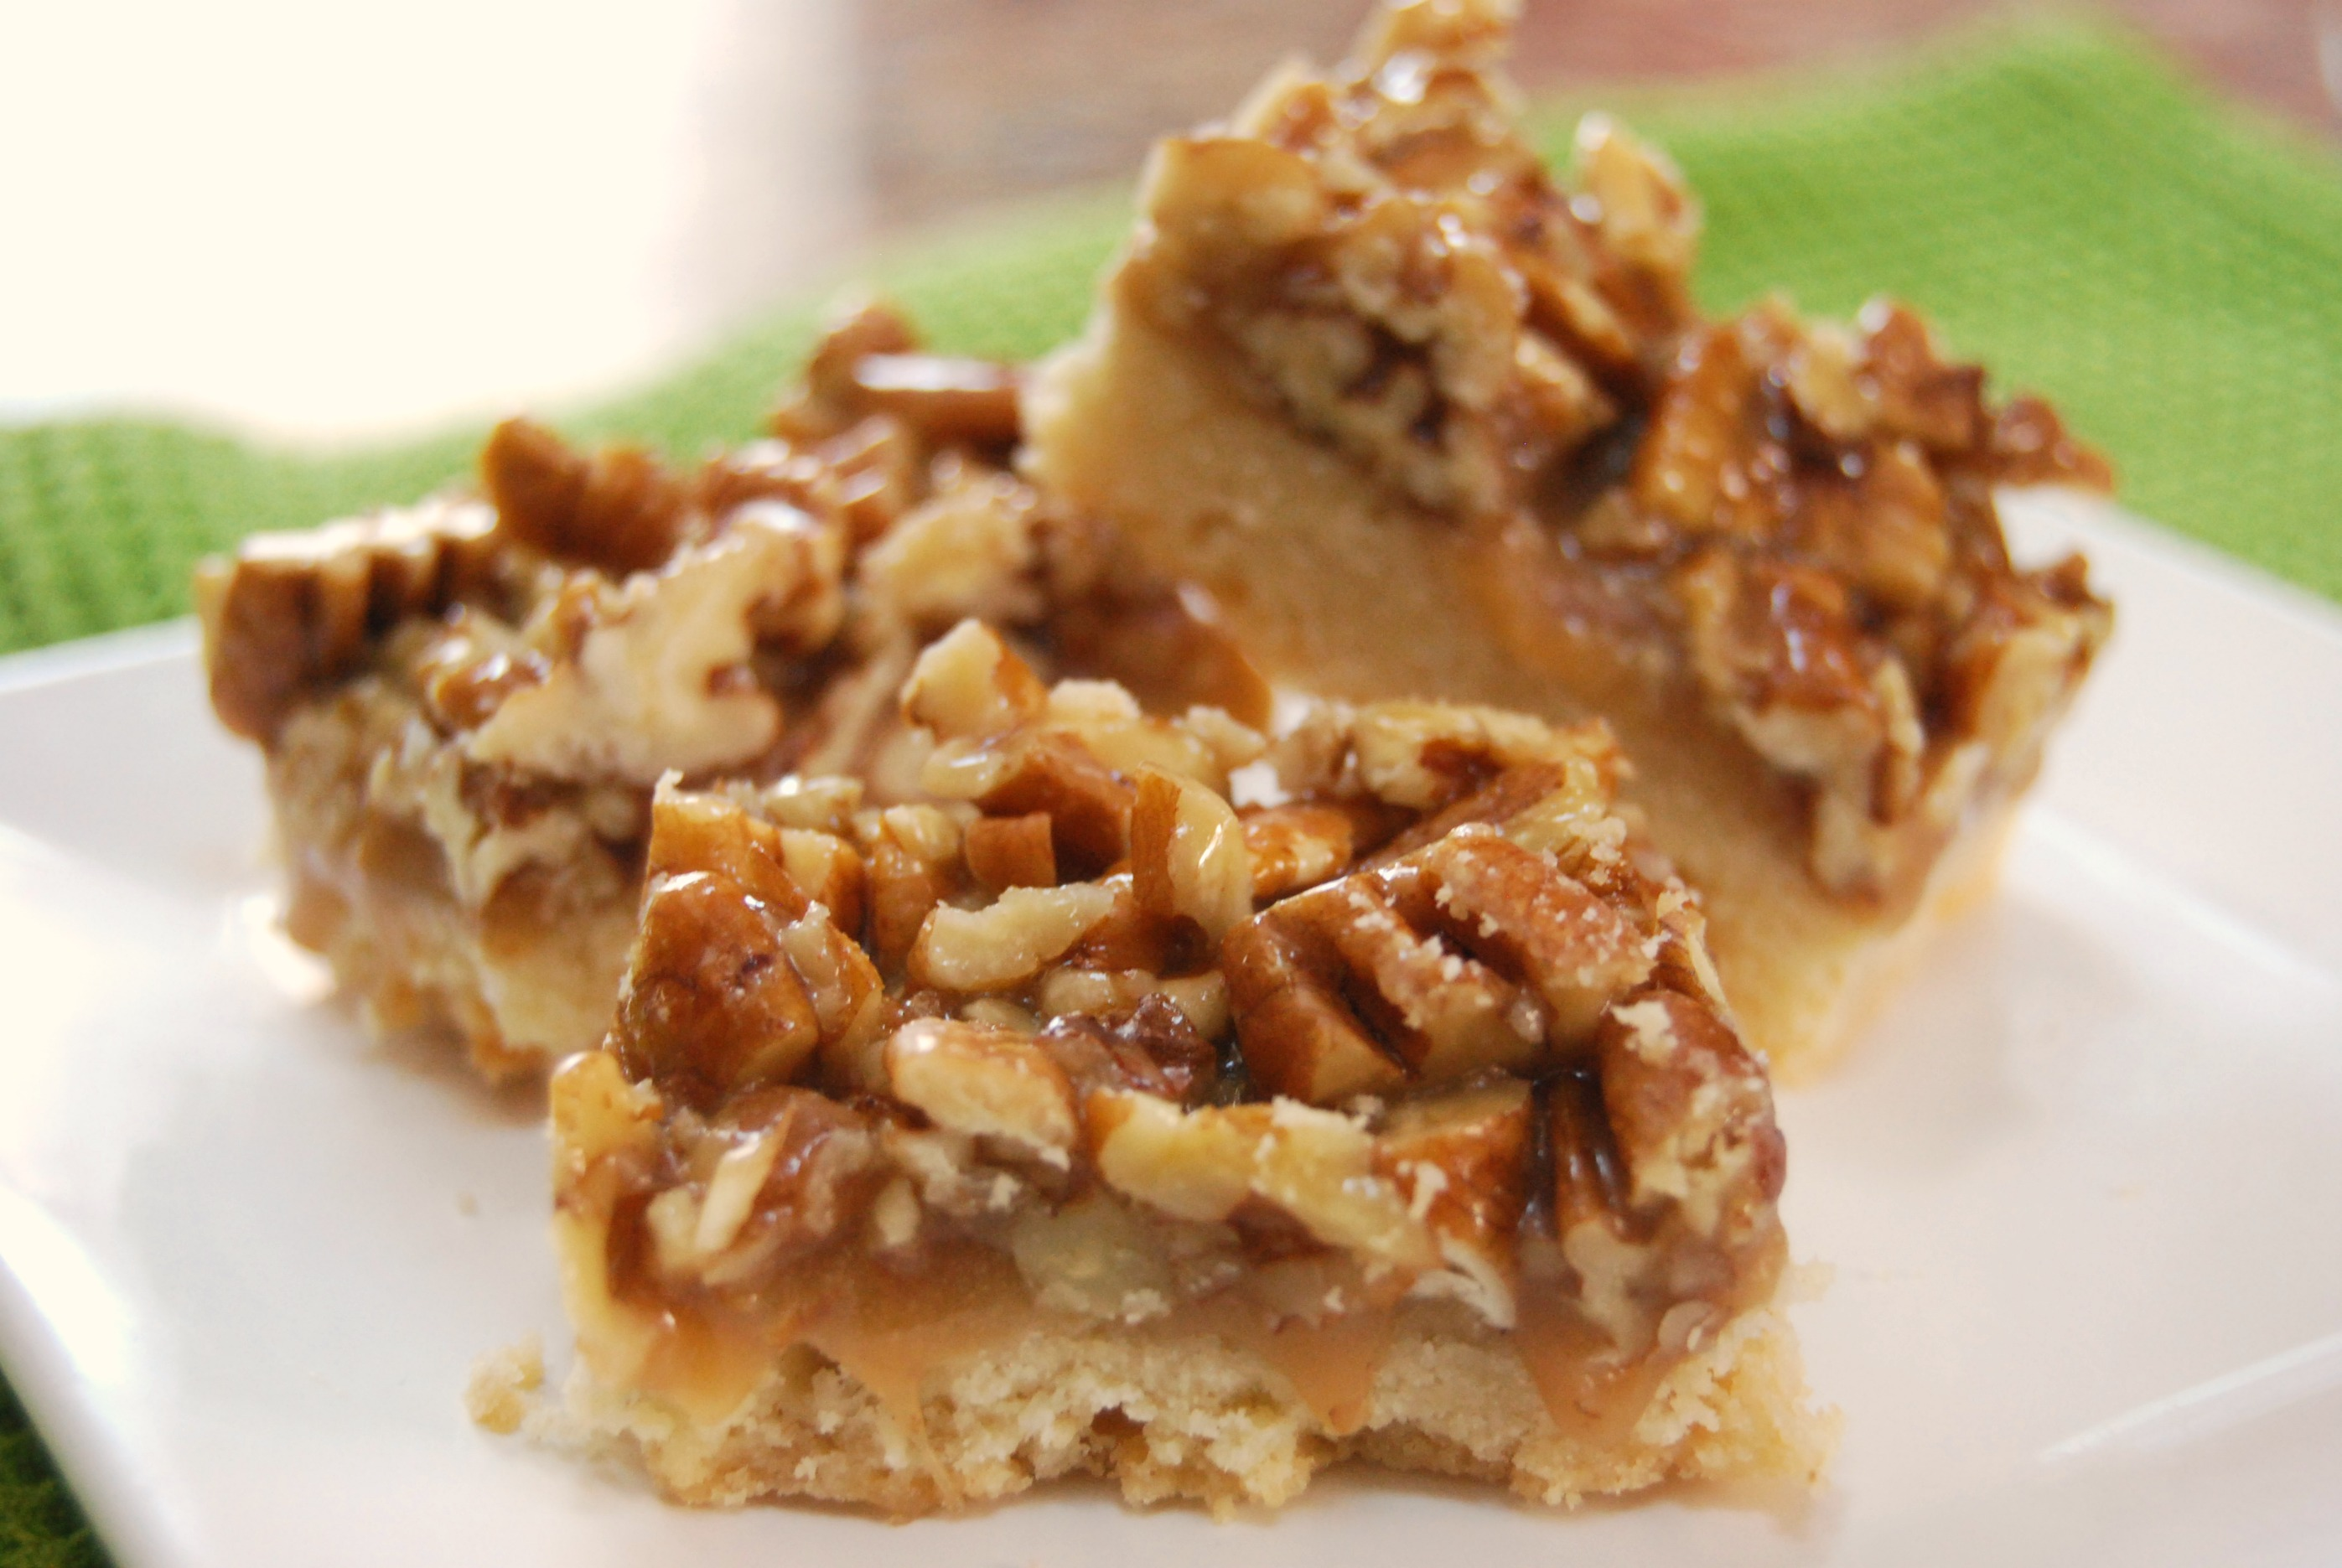 Pecan Pie Bars - Macaroni and Cheesecake